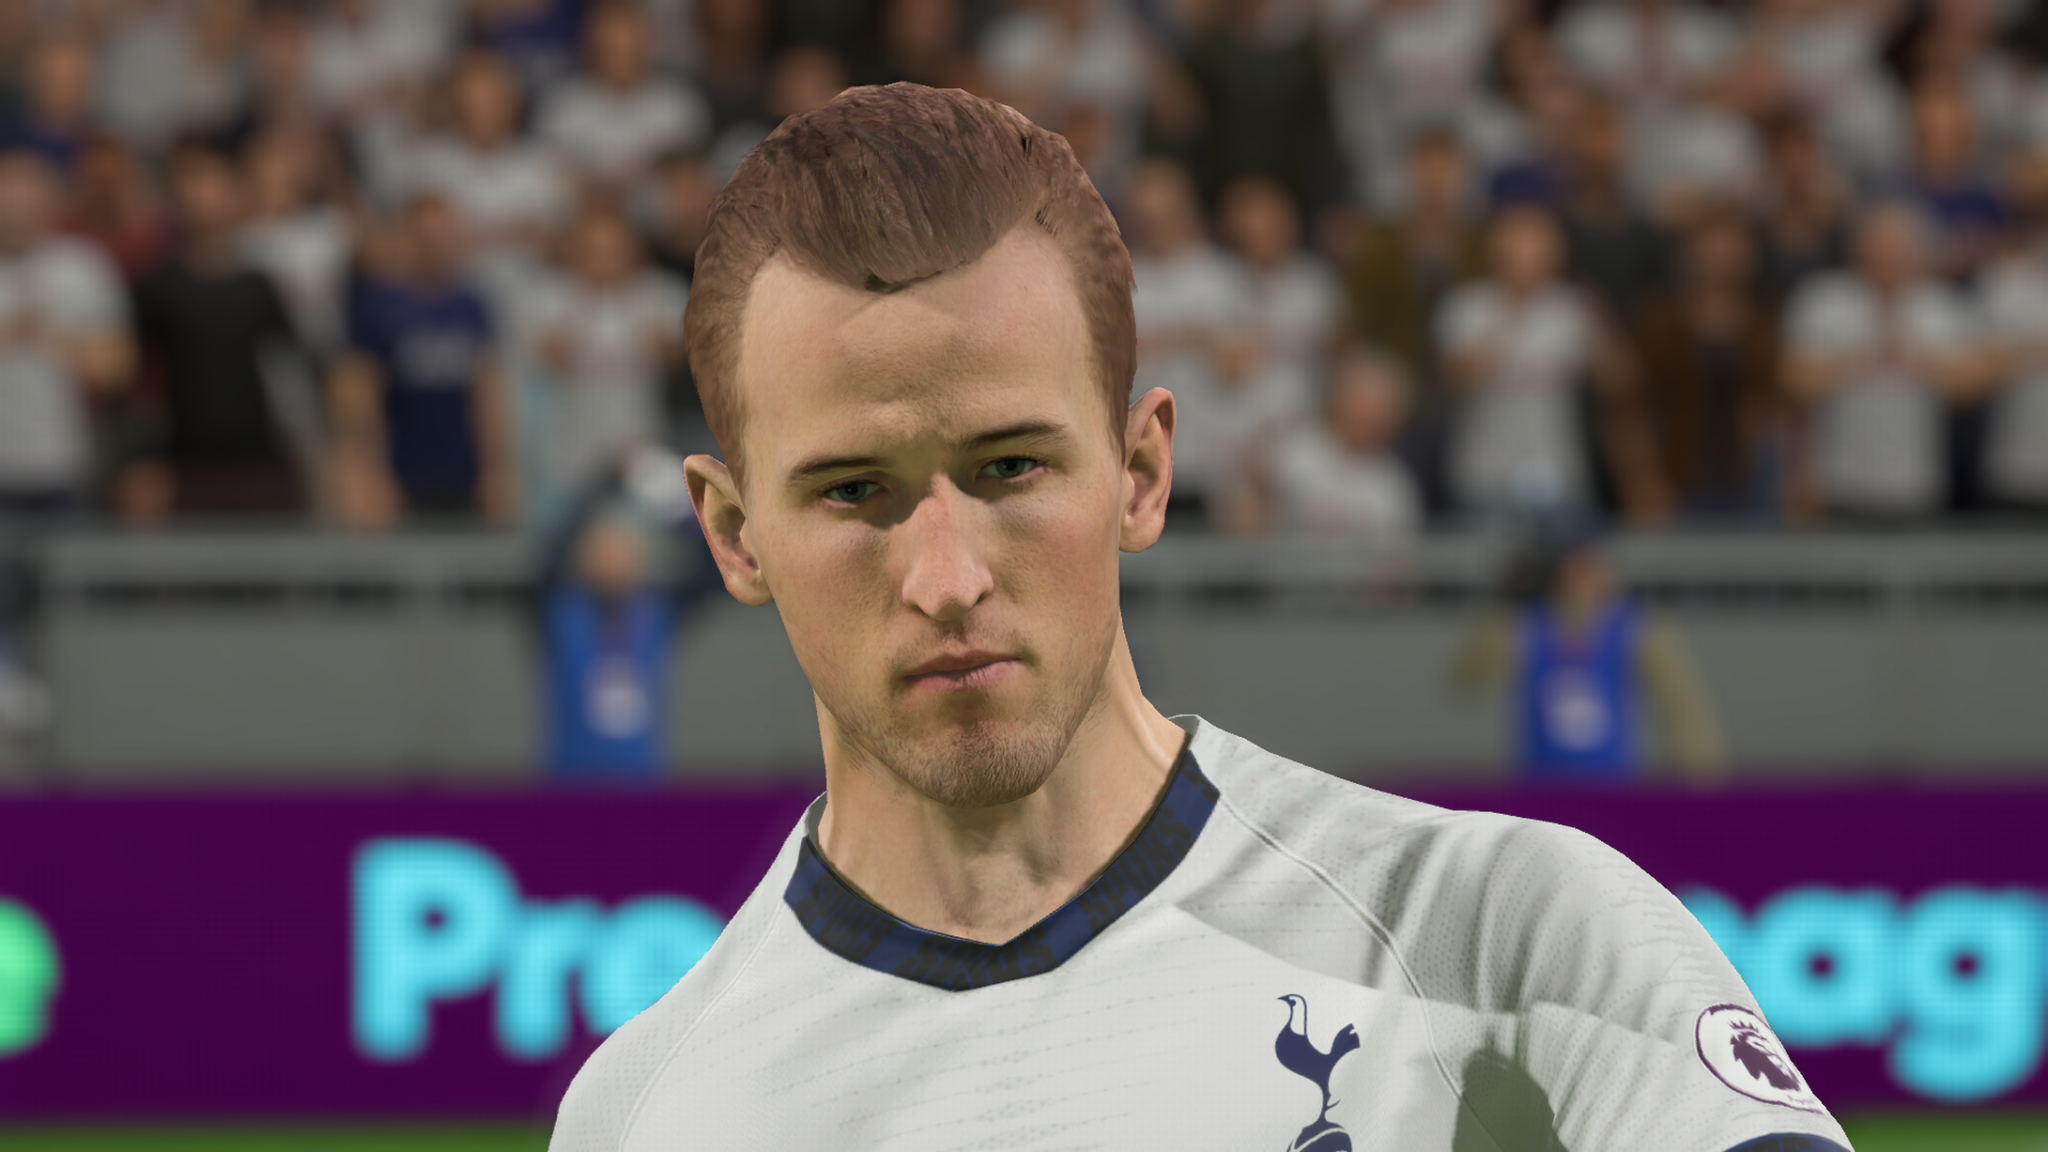 Tottenham striker Harry Kane in FIFA 20.